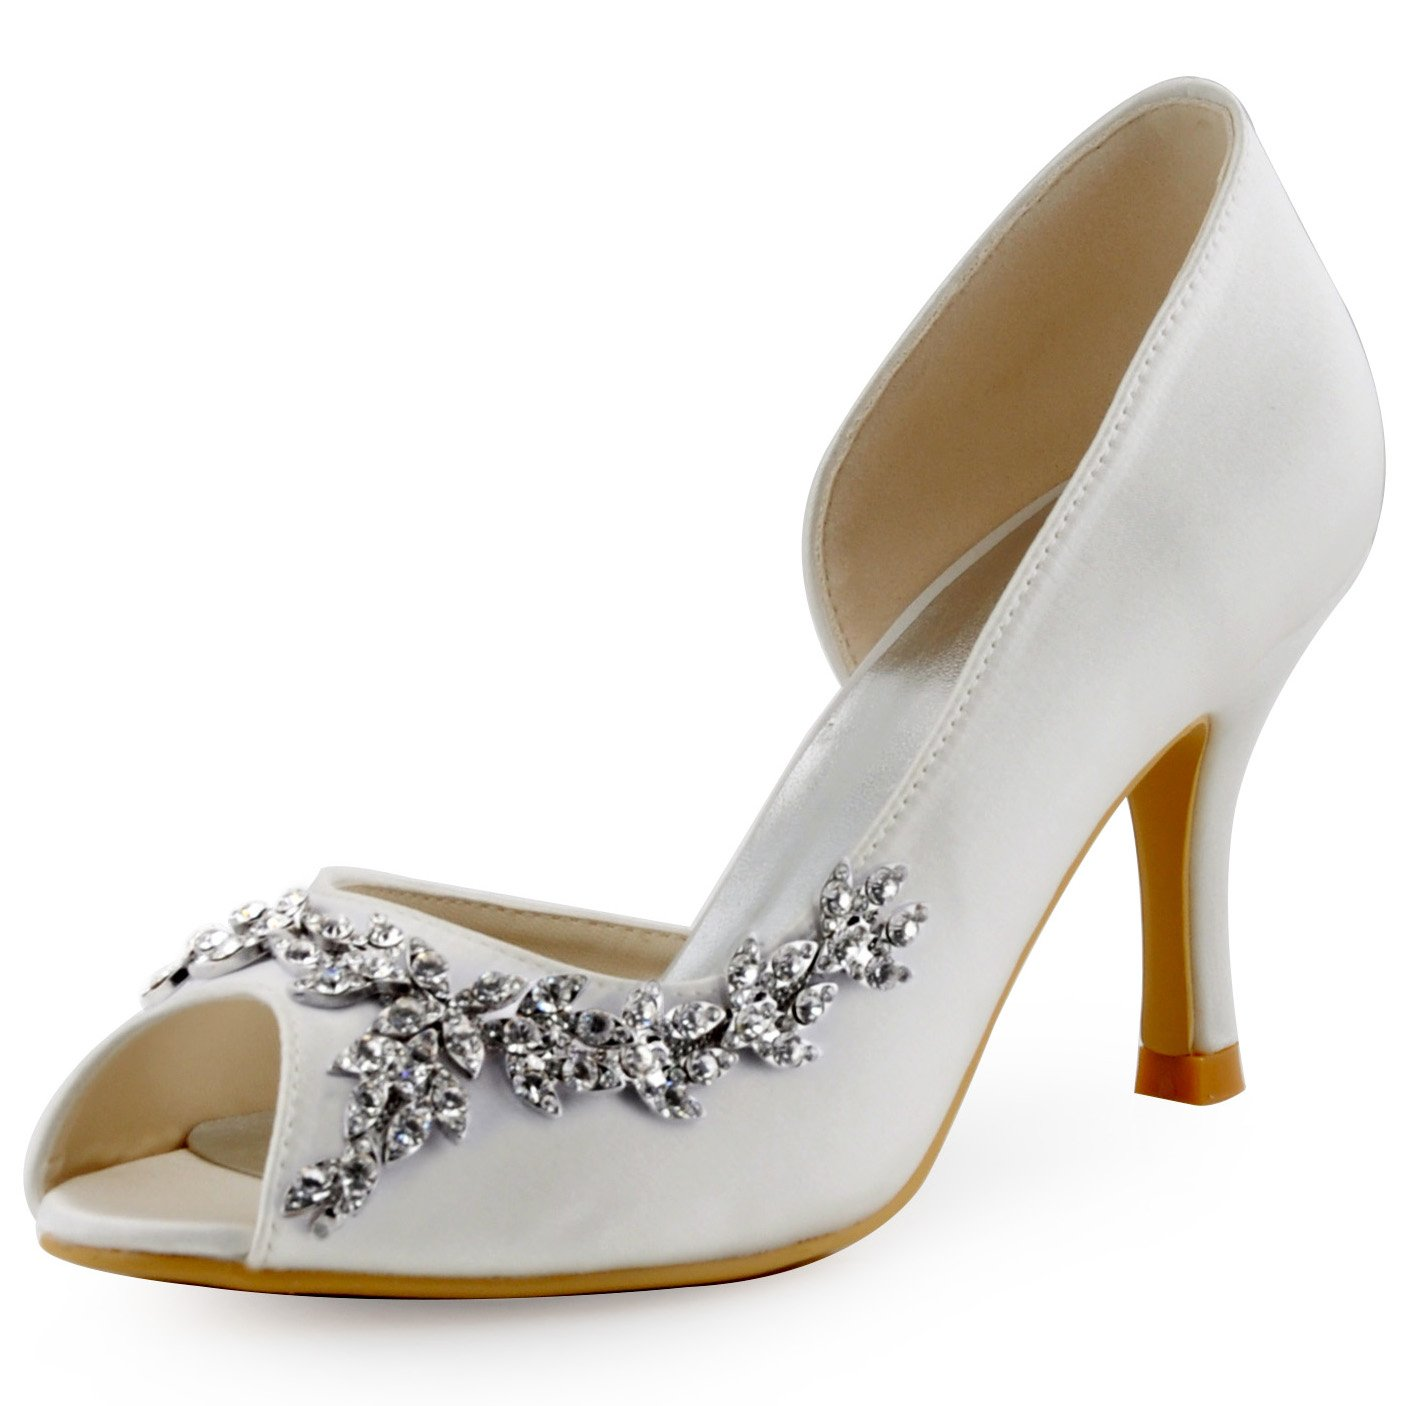 ElegantPark HP1542 Women Peep Toe Rhinestones Pumps High Heel Satin Wedding Bridal Dress Shoes Ivory US 7